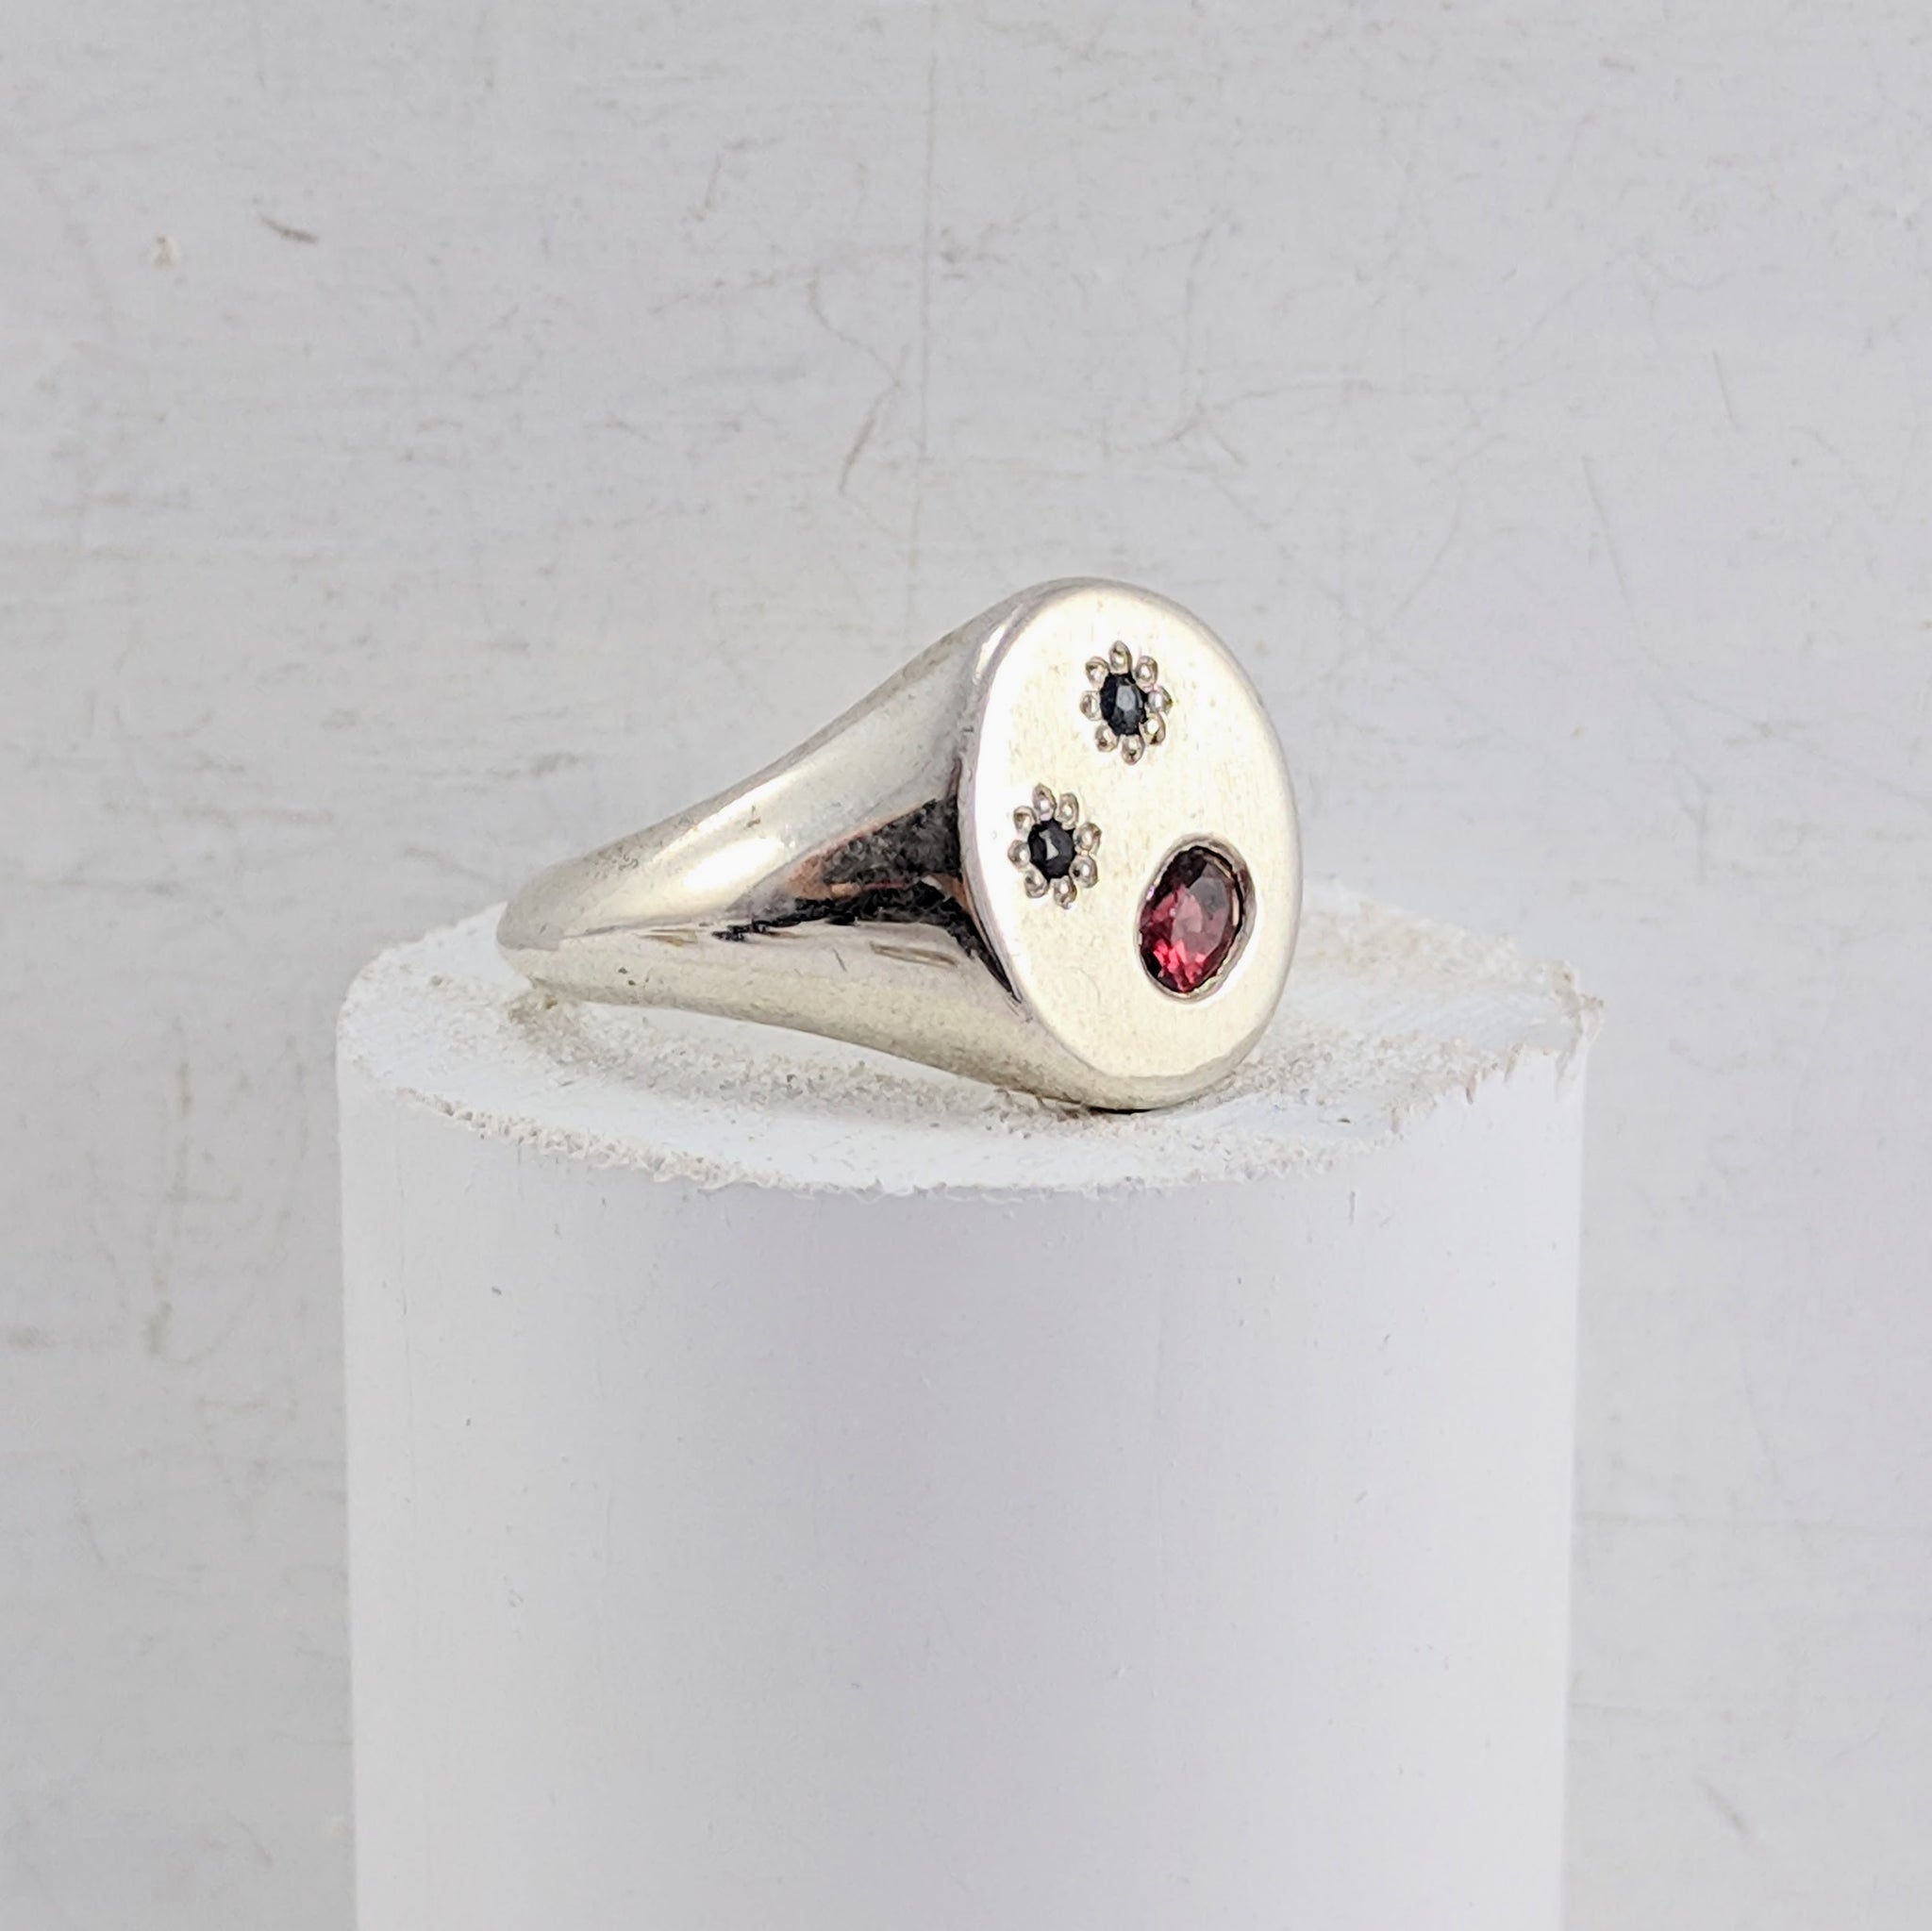 Stone set signet ring by Zoë Porter Jewellery.  Sterling silver oval shaped signet ring set with stones.